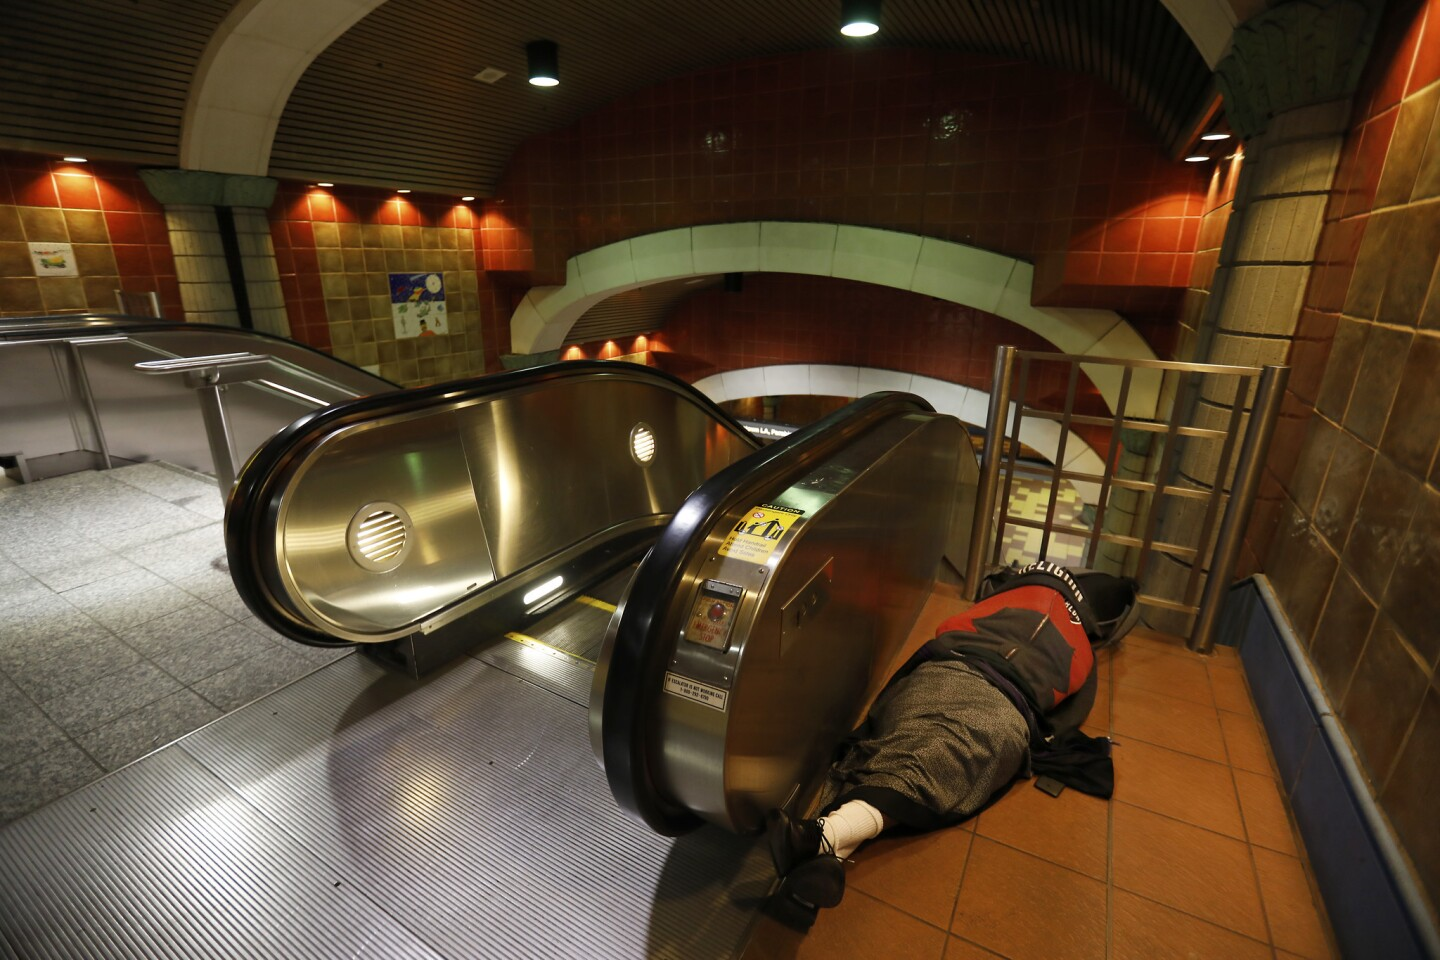 A person sleeps beside an escalator at the Hollywood/Vine Metro station. The 2018 Greater Los Angeles Homeless Count is tallying people around the city, including those sleeping near Metro stations and on trains.